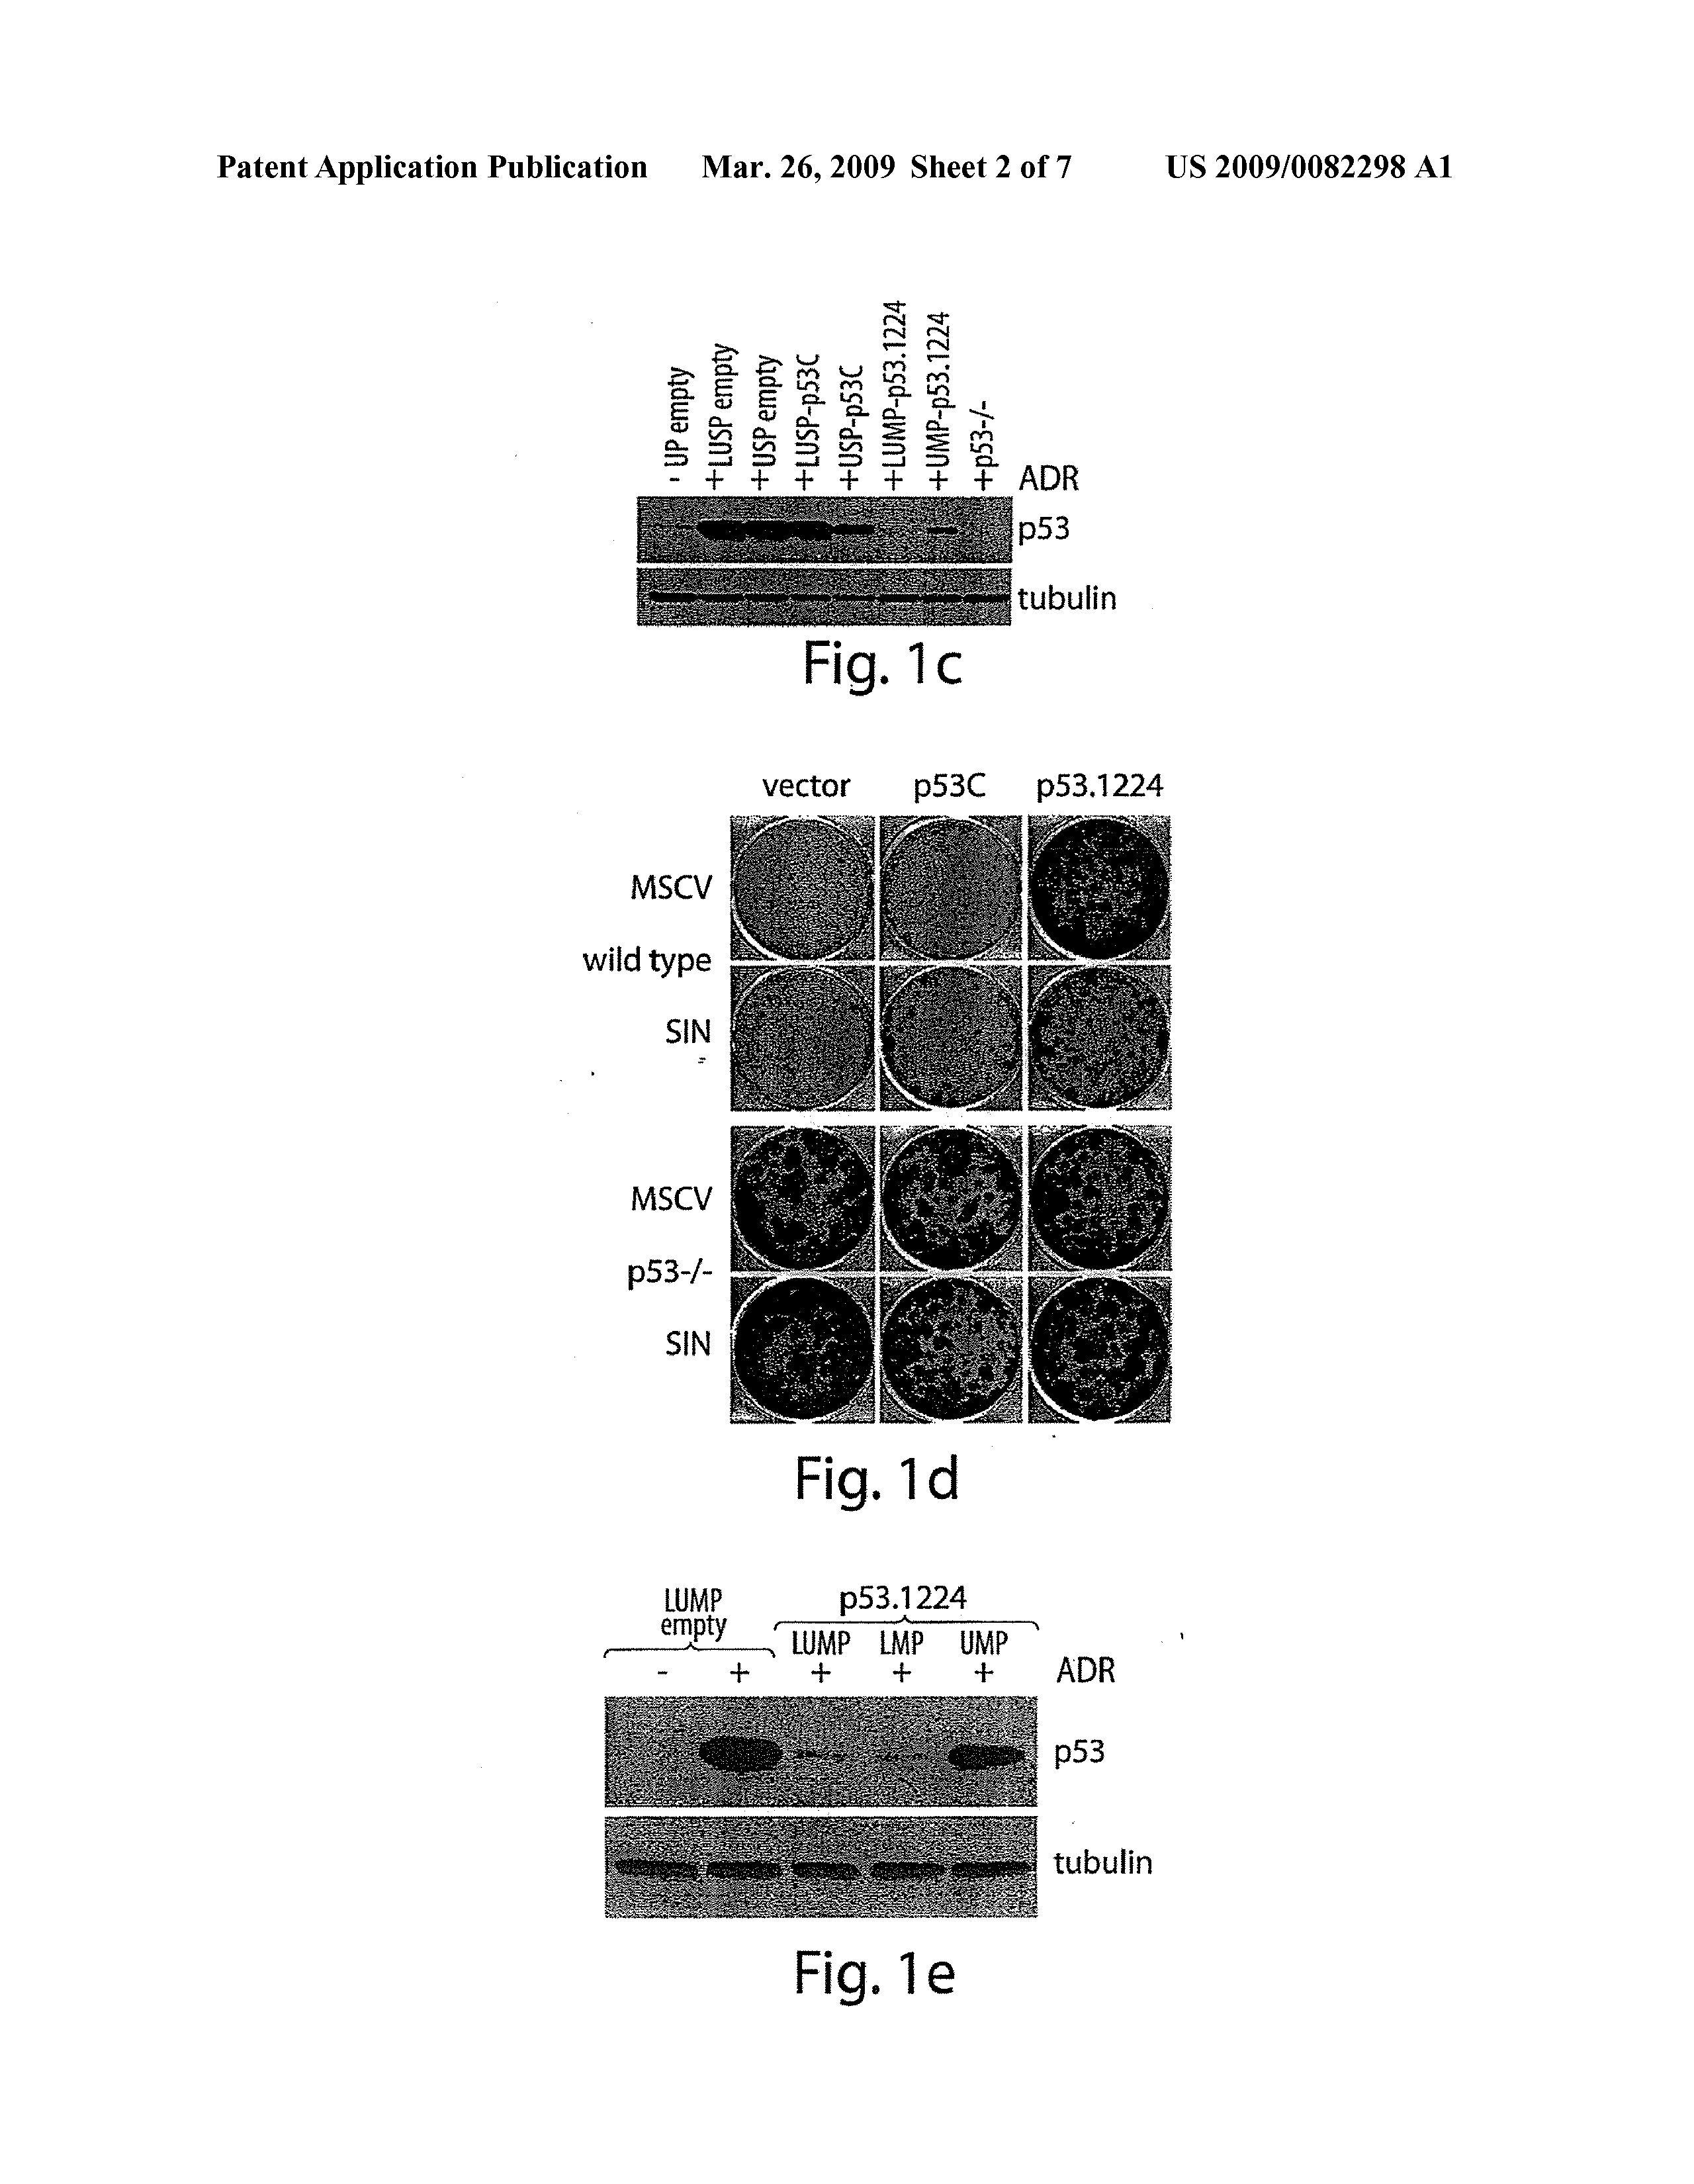 US 2009/0082298 A1 - Methods For Producing Micrornas - The